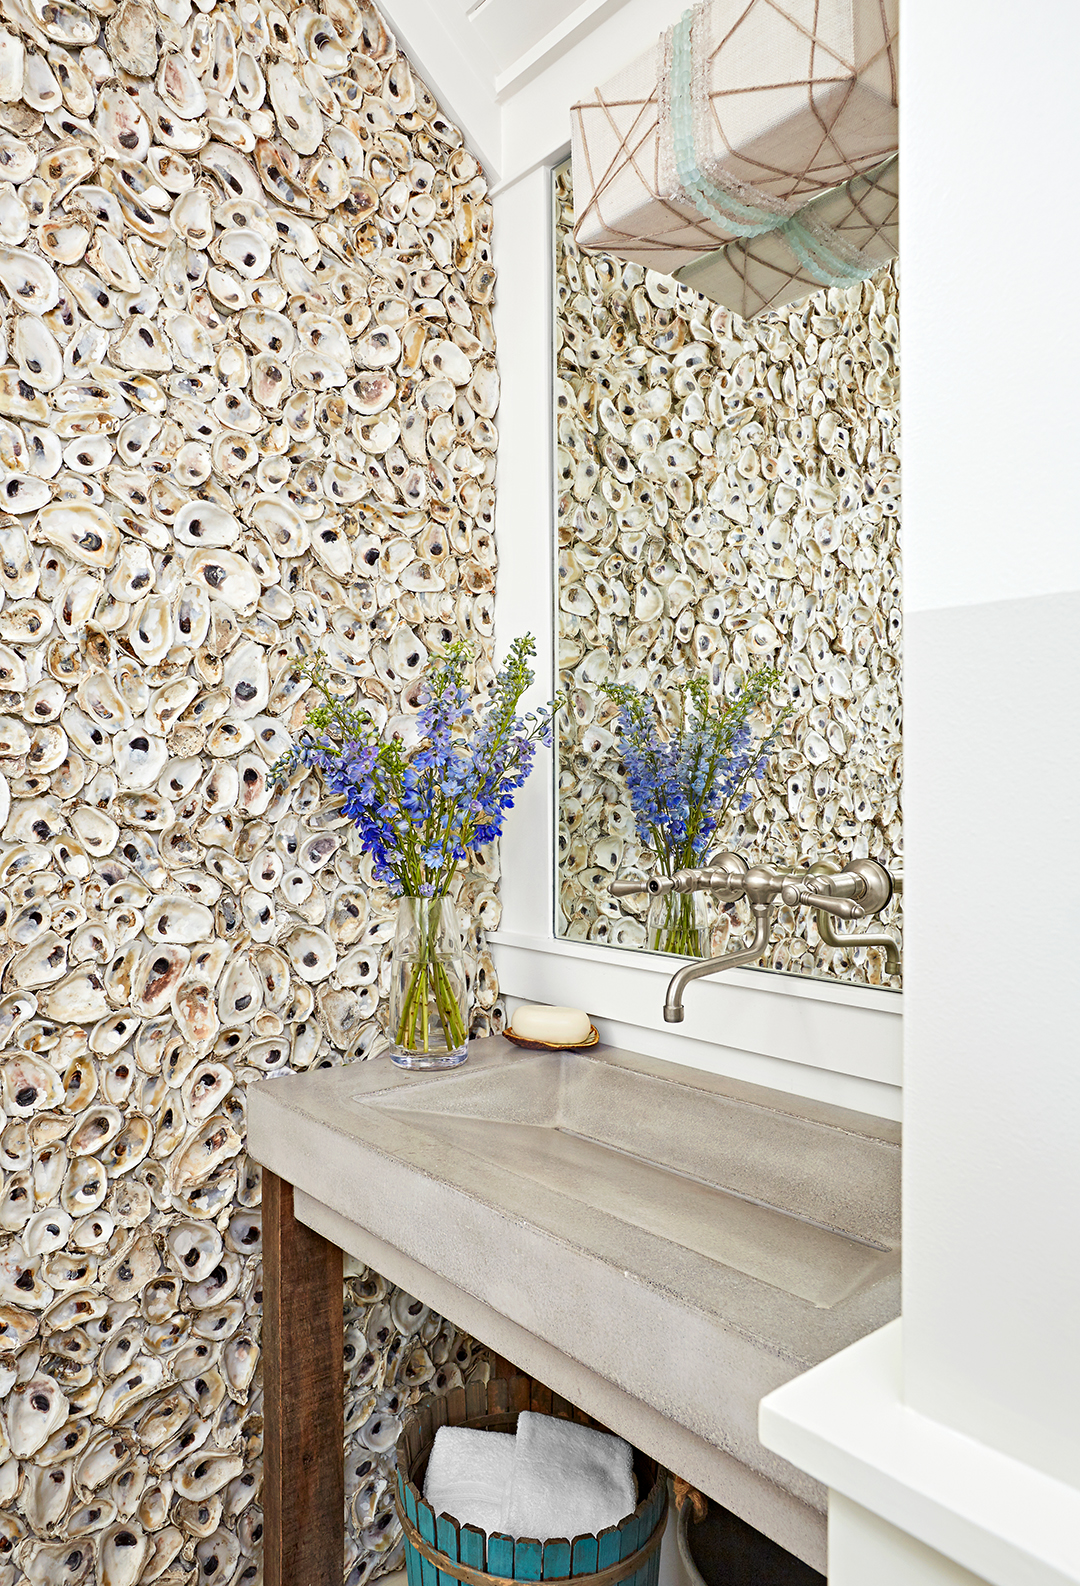 oyster shell wall plus concrete sink in powder room